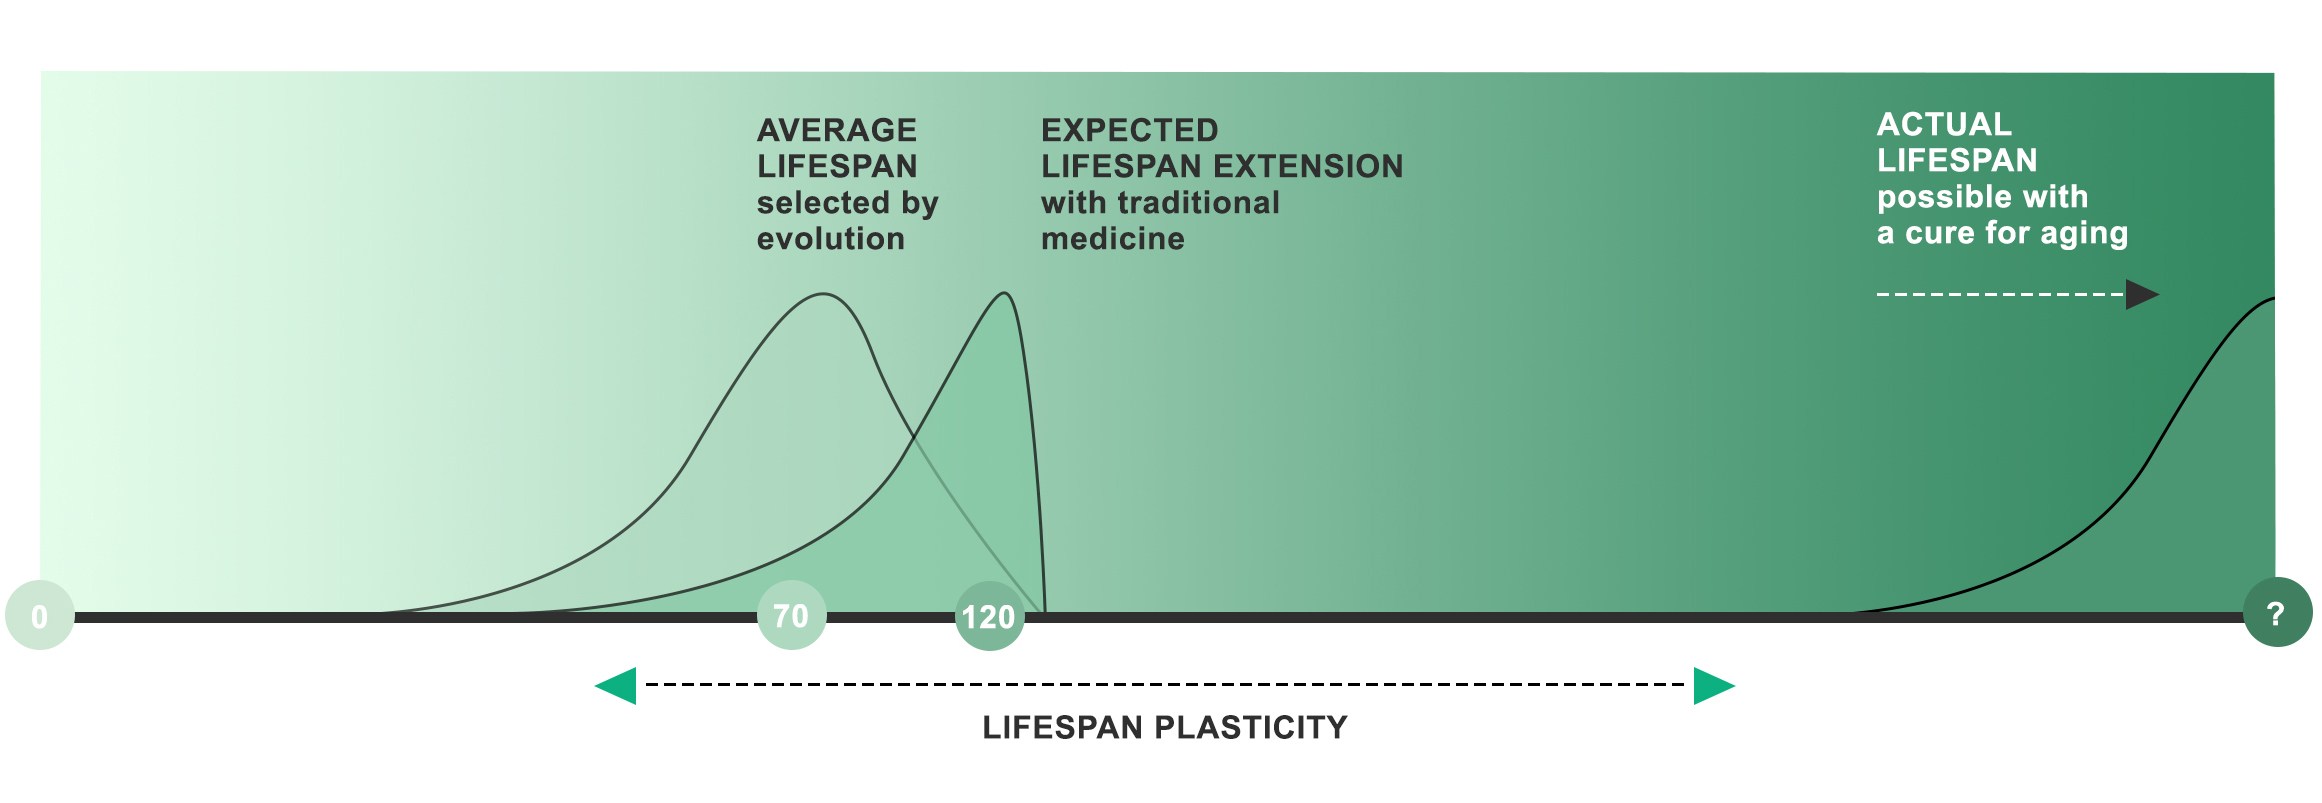 Figure 2.  The traditional theory that evolution selects for the longest possible life leads biologists to think that lifespans are inherently limited to the ones we have today. In this view, aging cannot be stopped and lives can be extended only to about 120 years. The new understanding that evolution selects for shorter lifespans implies that aging is a mechanism for limiting lifespans which can be changed. Aging as we experience it is unnecessary, and can be postponed until the actual intrinsic lifespan limit is reached.